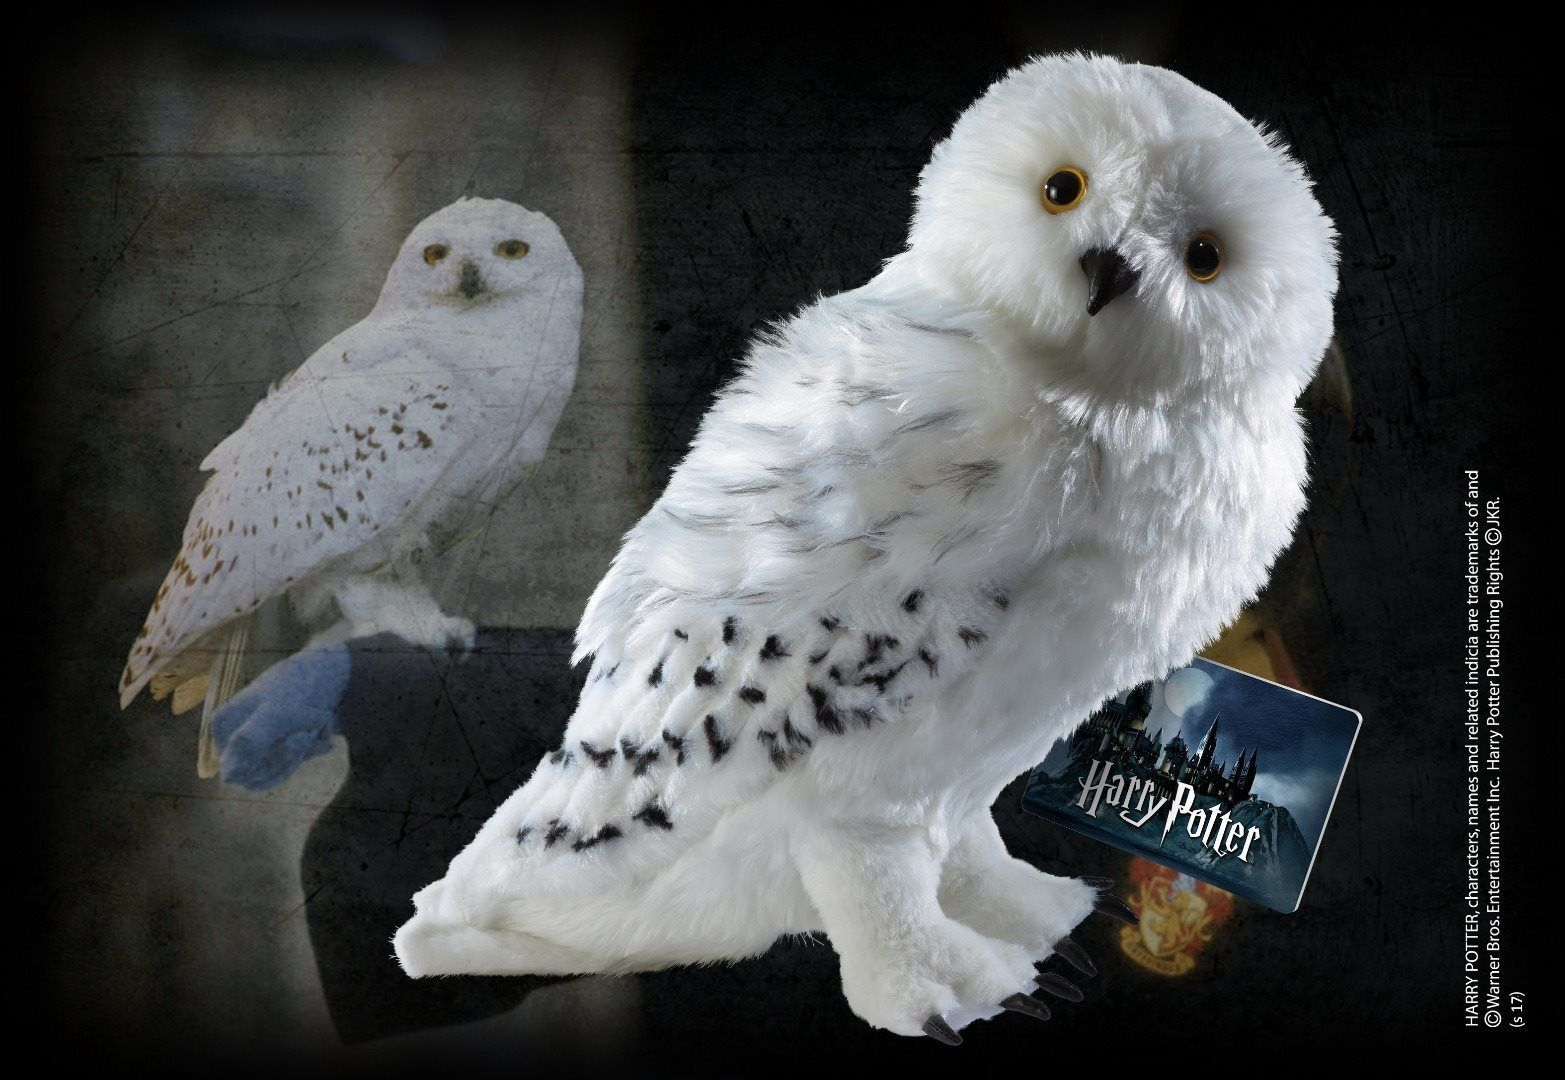 Free Shipping Harry Potter Hedwig Plush 30cm Figure From The Noble Collection Nn8871 Harry Potter Hedwig Harry Potter Plush Hedwig Owl